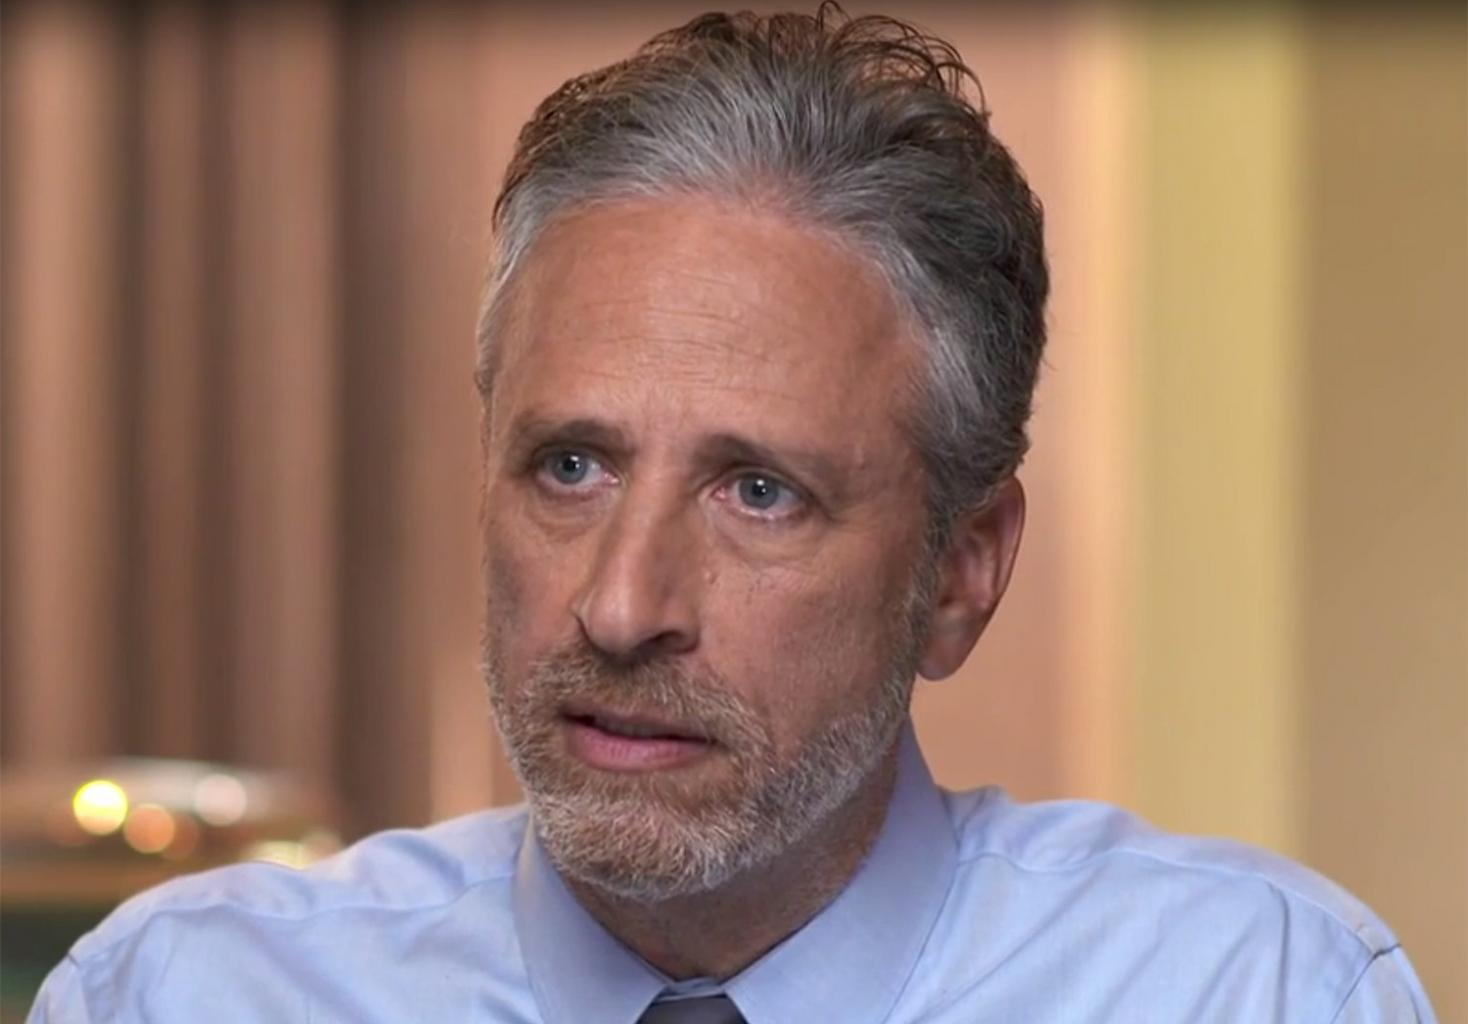 Finally! Jon Stewart  's Two Cents on the Election  '  And Why Liberals Need to Rethink Trump Supporters